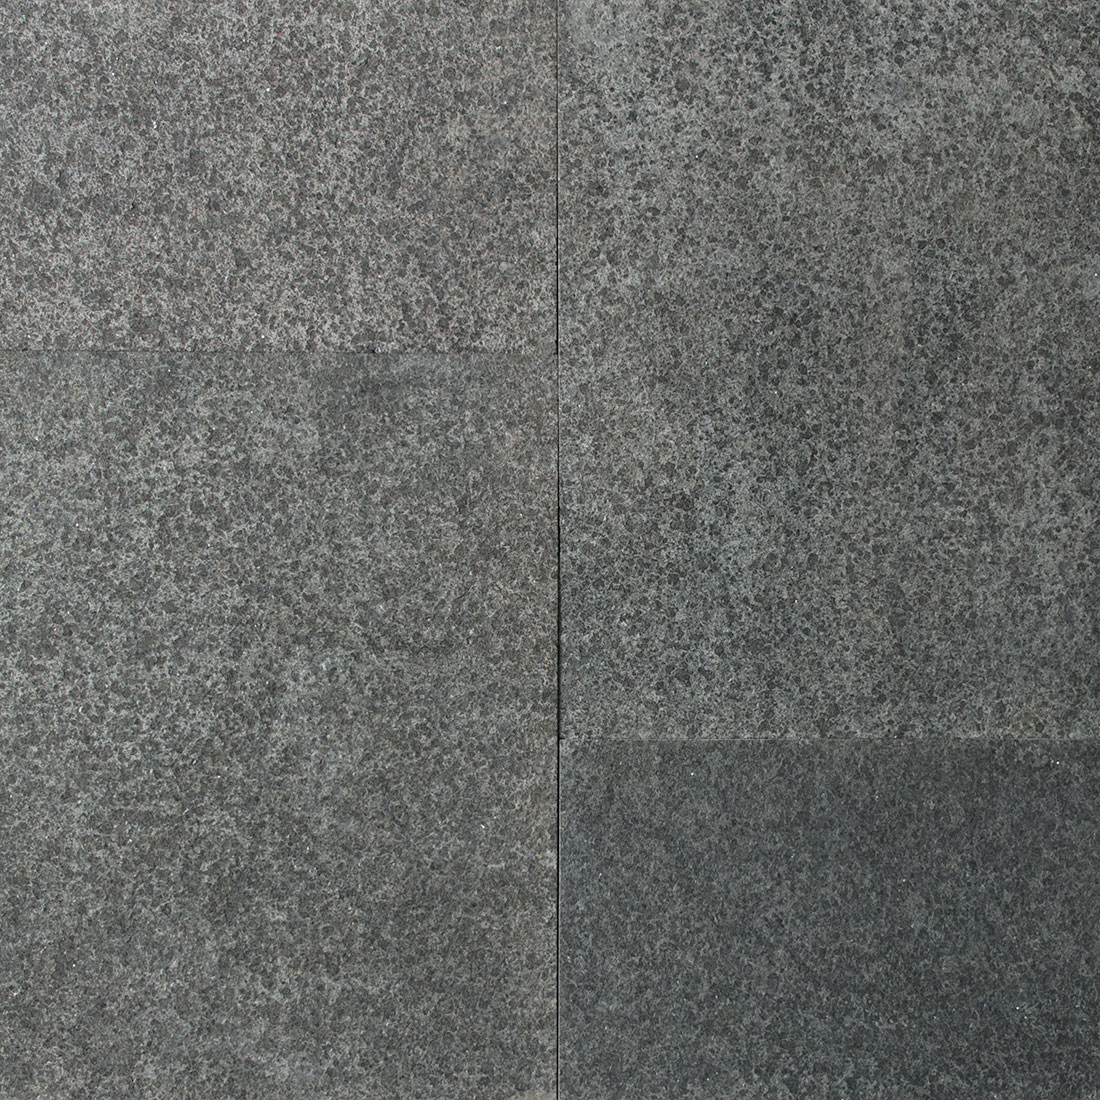 India Jet Black flamed square cut flagstone paver swatch